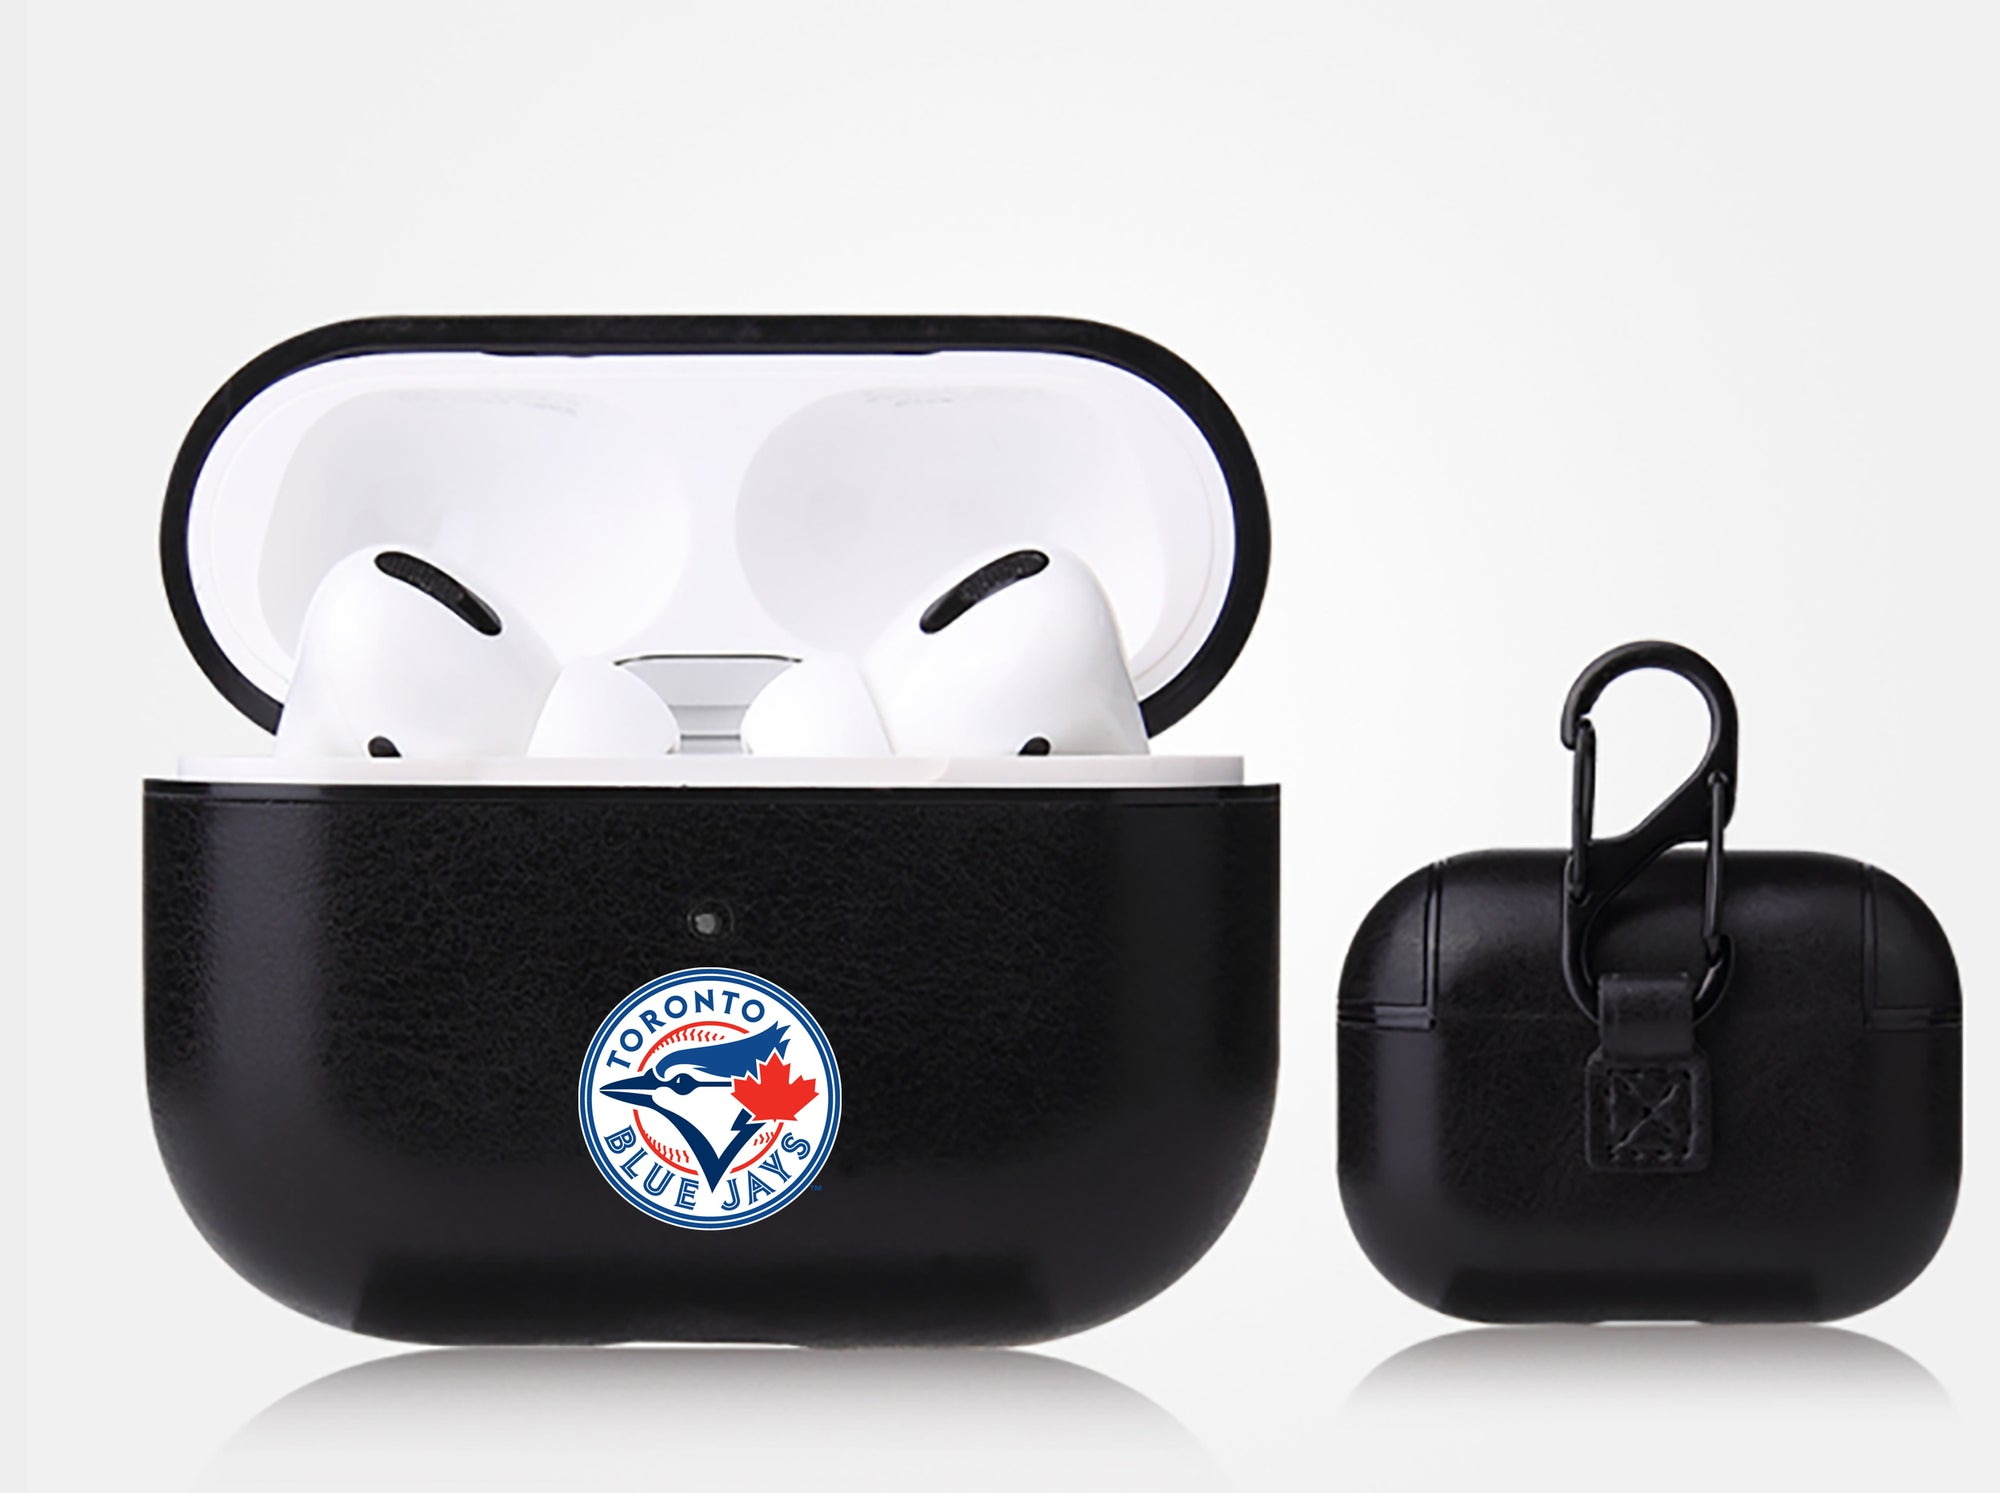 Toronto Blue Jays Apple Air Pod Pro Leatherette